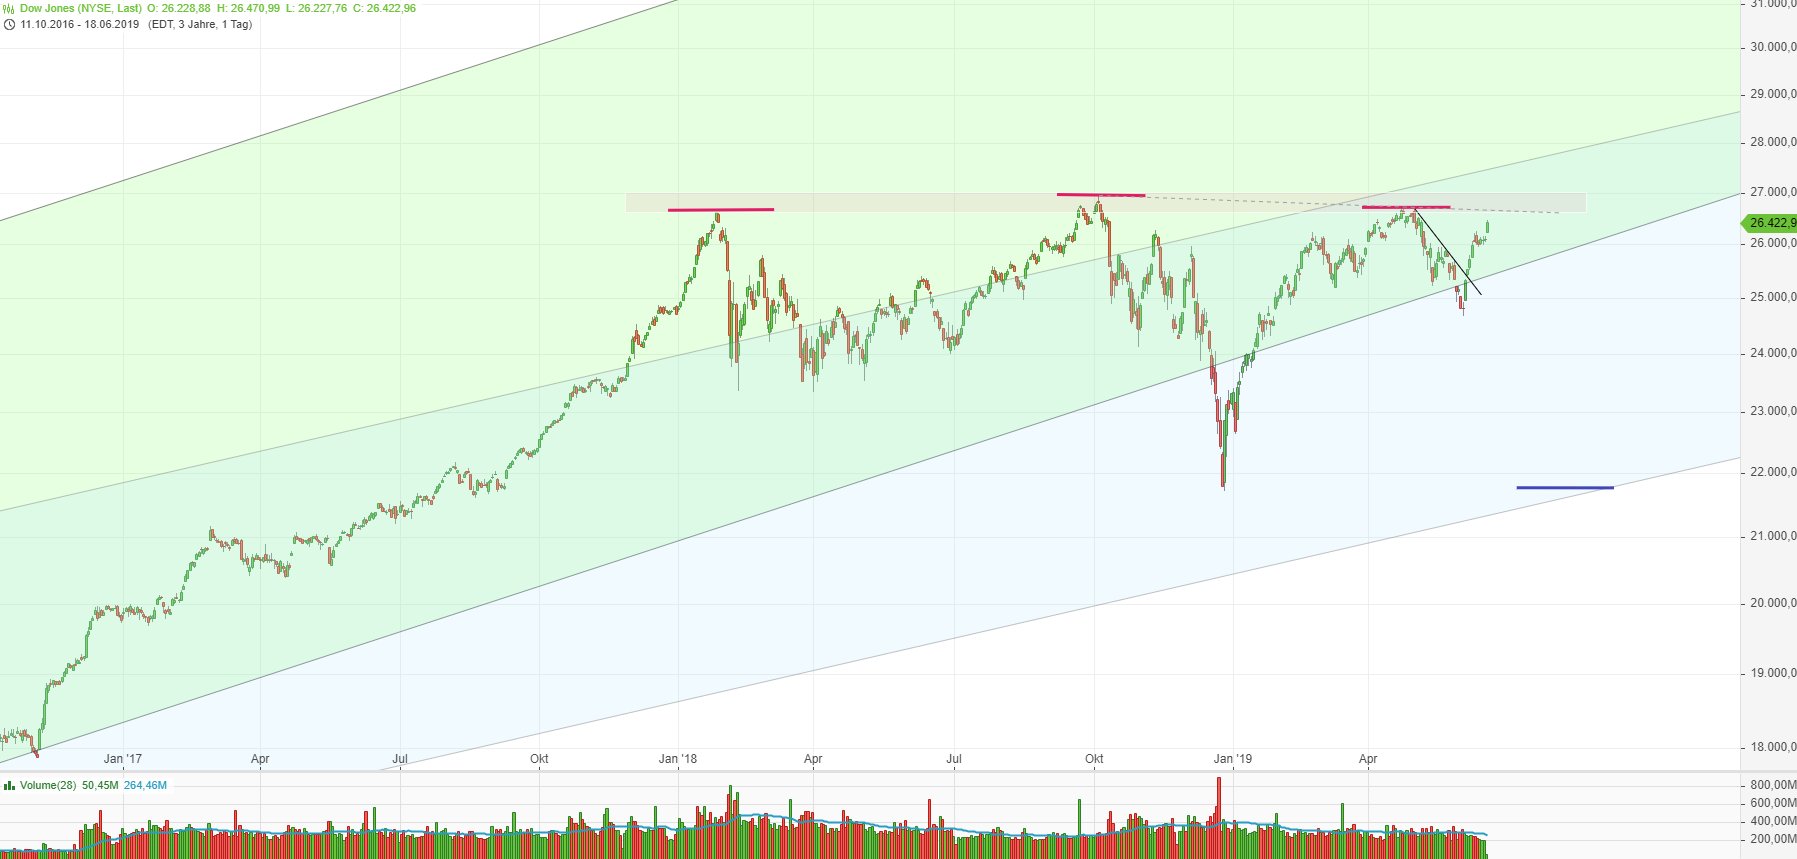 dow_2019-06-18_1620h.png